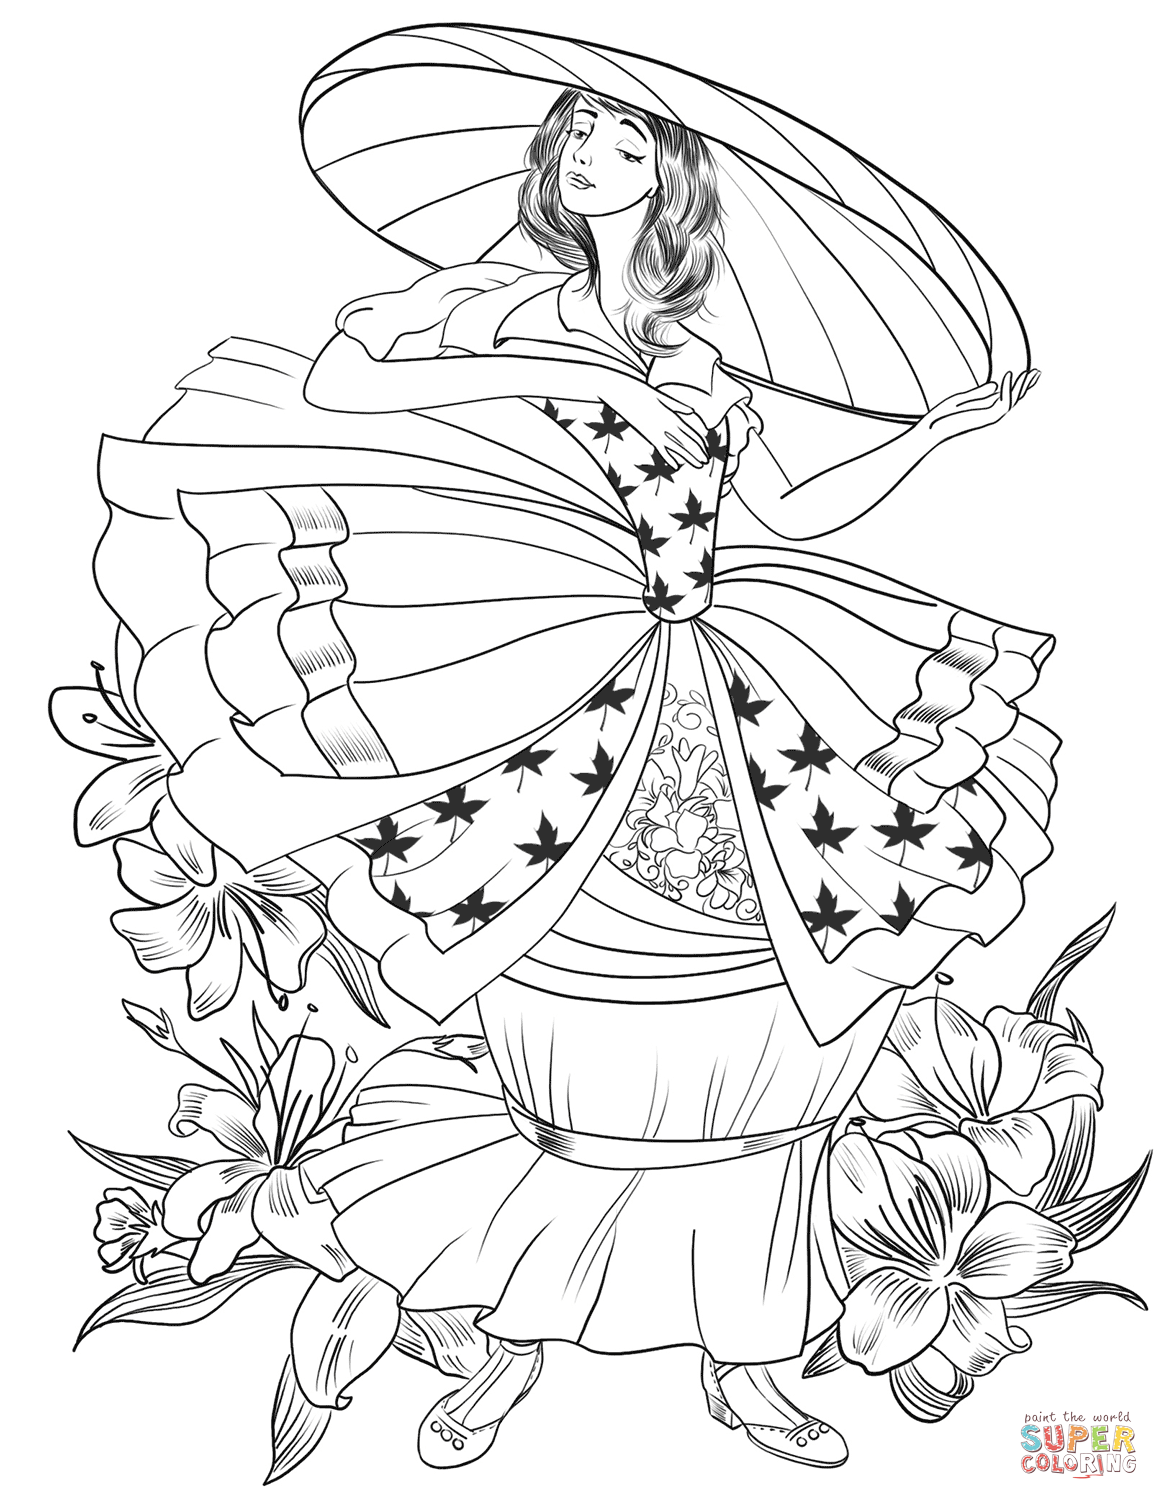 victorian pictures to colour victorian lady and soldier coloring pages for adults to colour victorian pictures